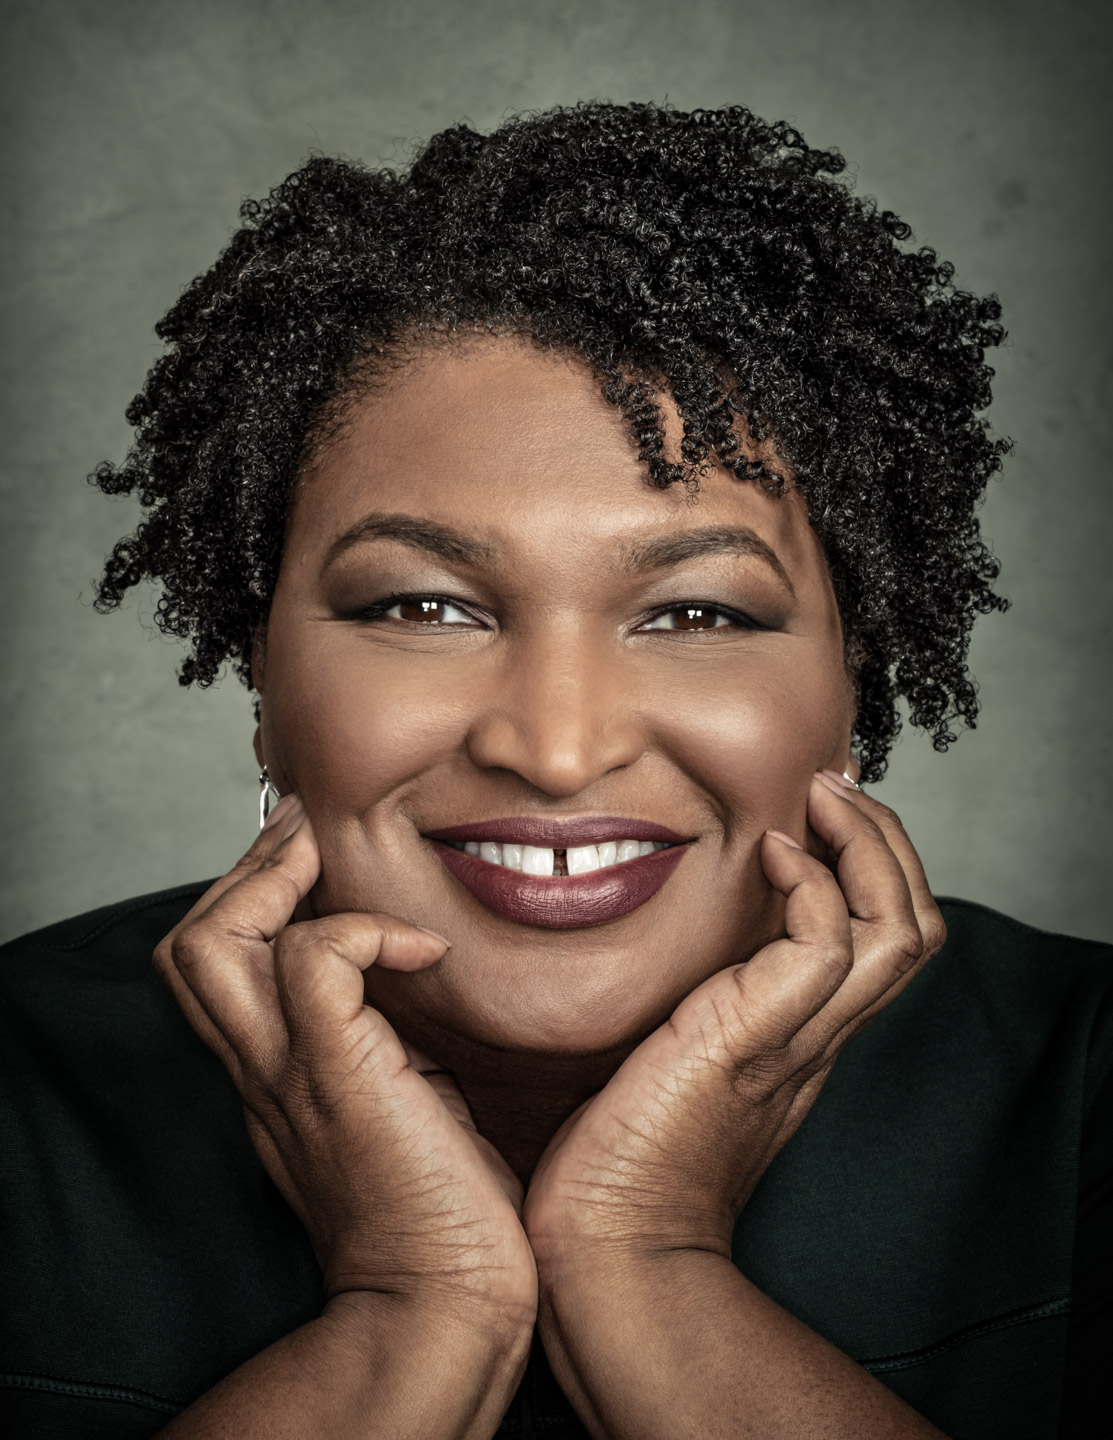 Winters_New_York_Magazine_Stacey_Abrams_4809_v2